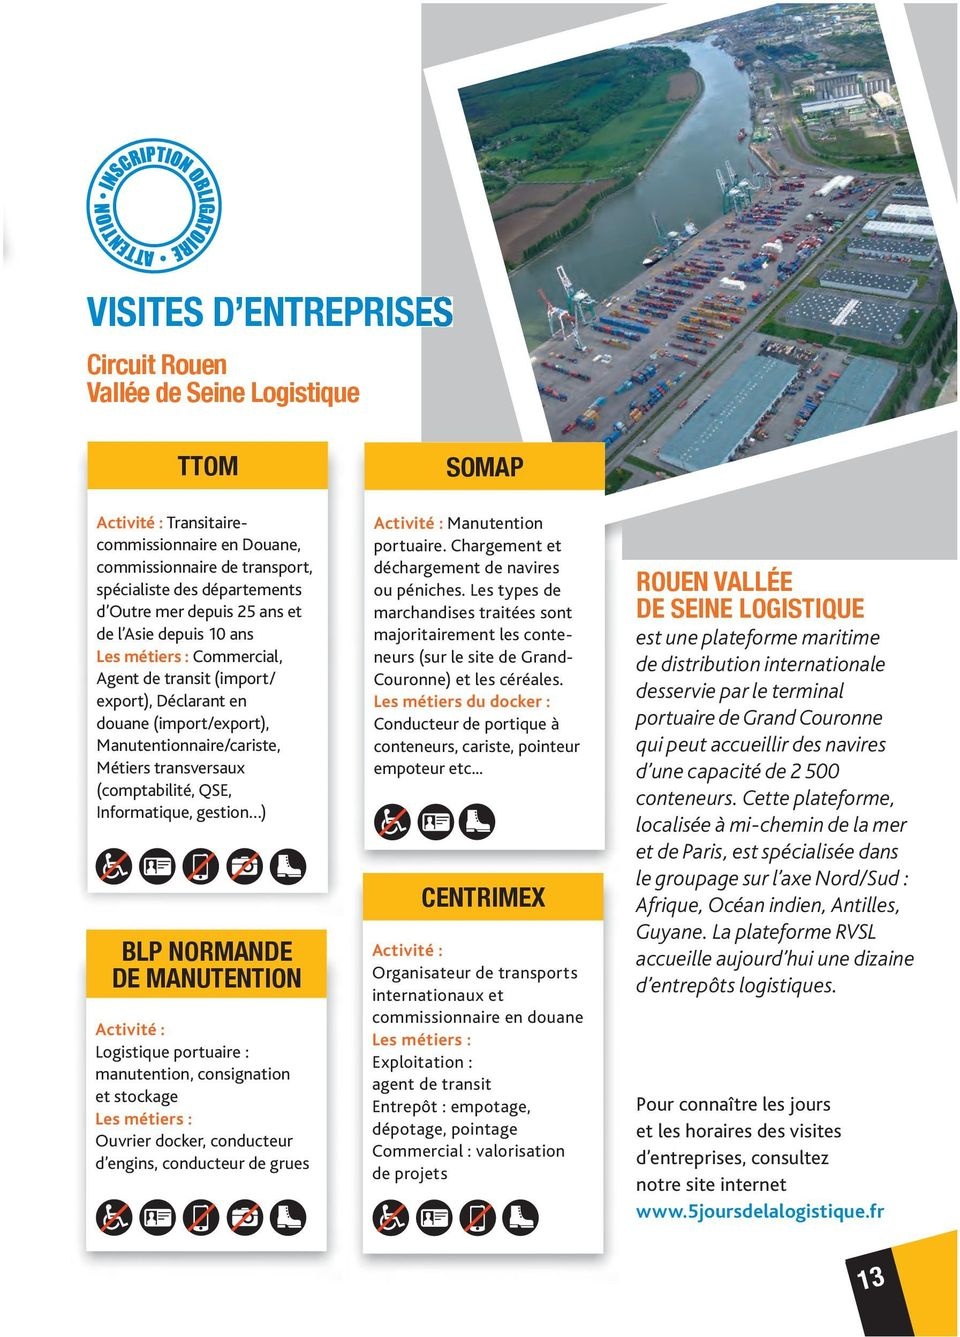 Informatique, gestion ) BLP NORMANDE DE MANUTENTION Activité : Logistique portuaire : manutention, consignation et stockage Les métiers : Ouvrier docker, conducteur d engins, conducteur de grues